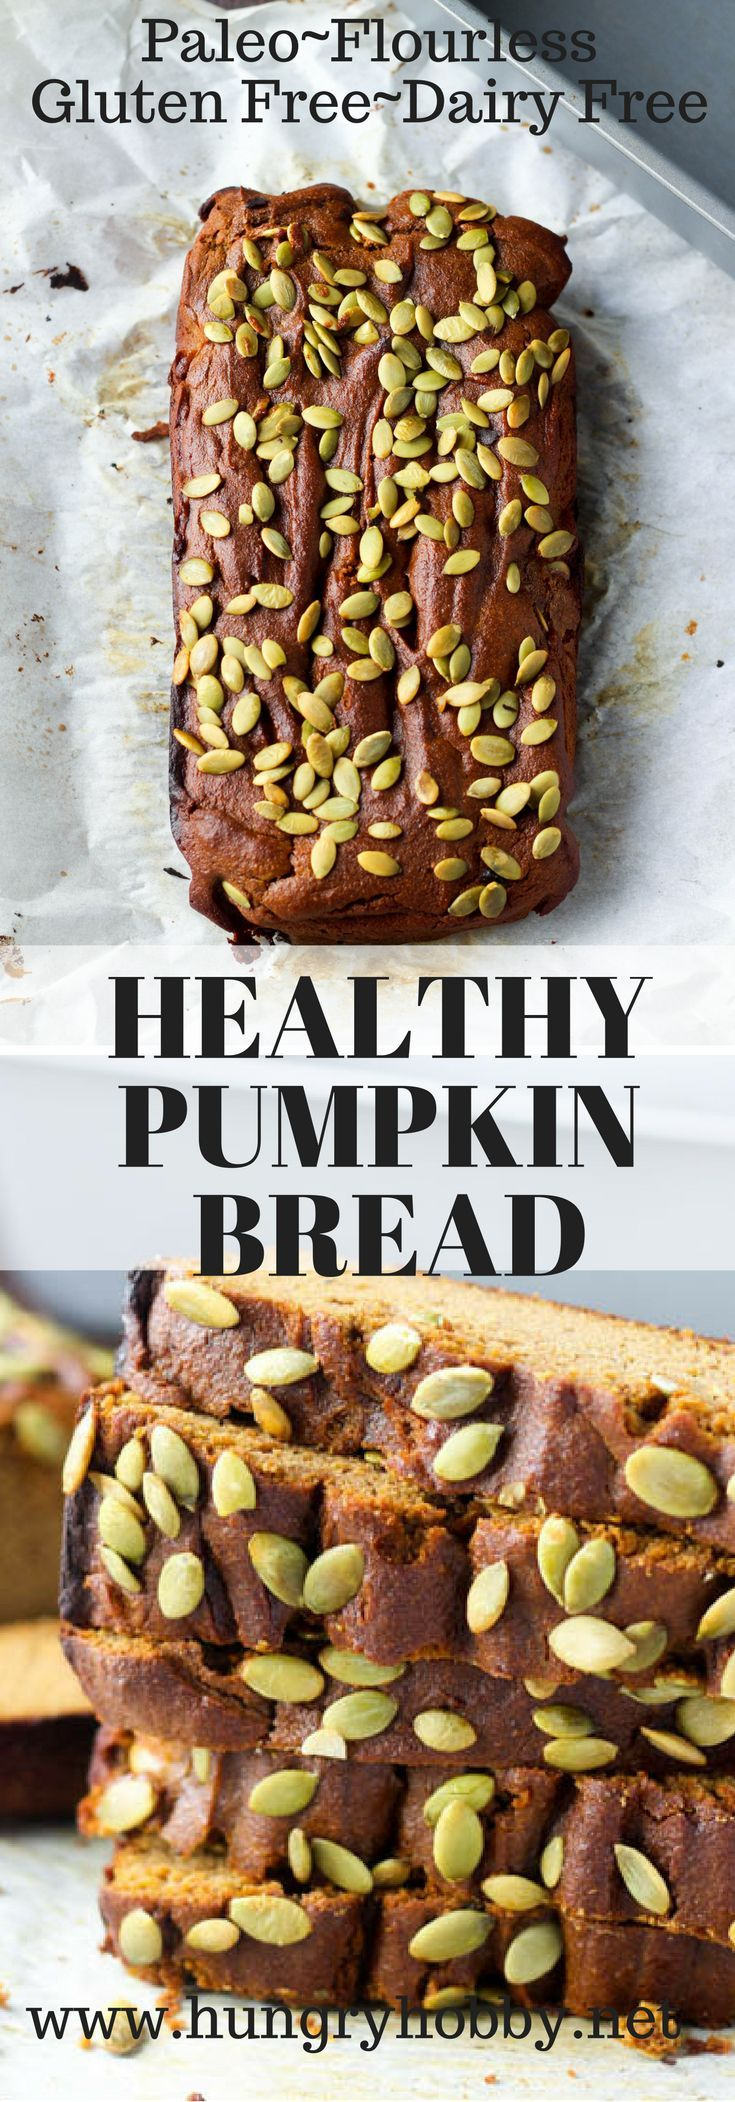 Flourless Pumpkin Bread is full of delicious sweet cinnamon pumpkin flavor that will rock your world! Tender, moist, and surrounded by a sweet crust. GF